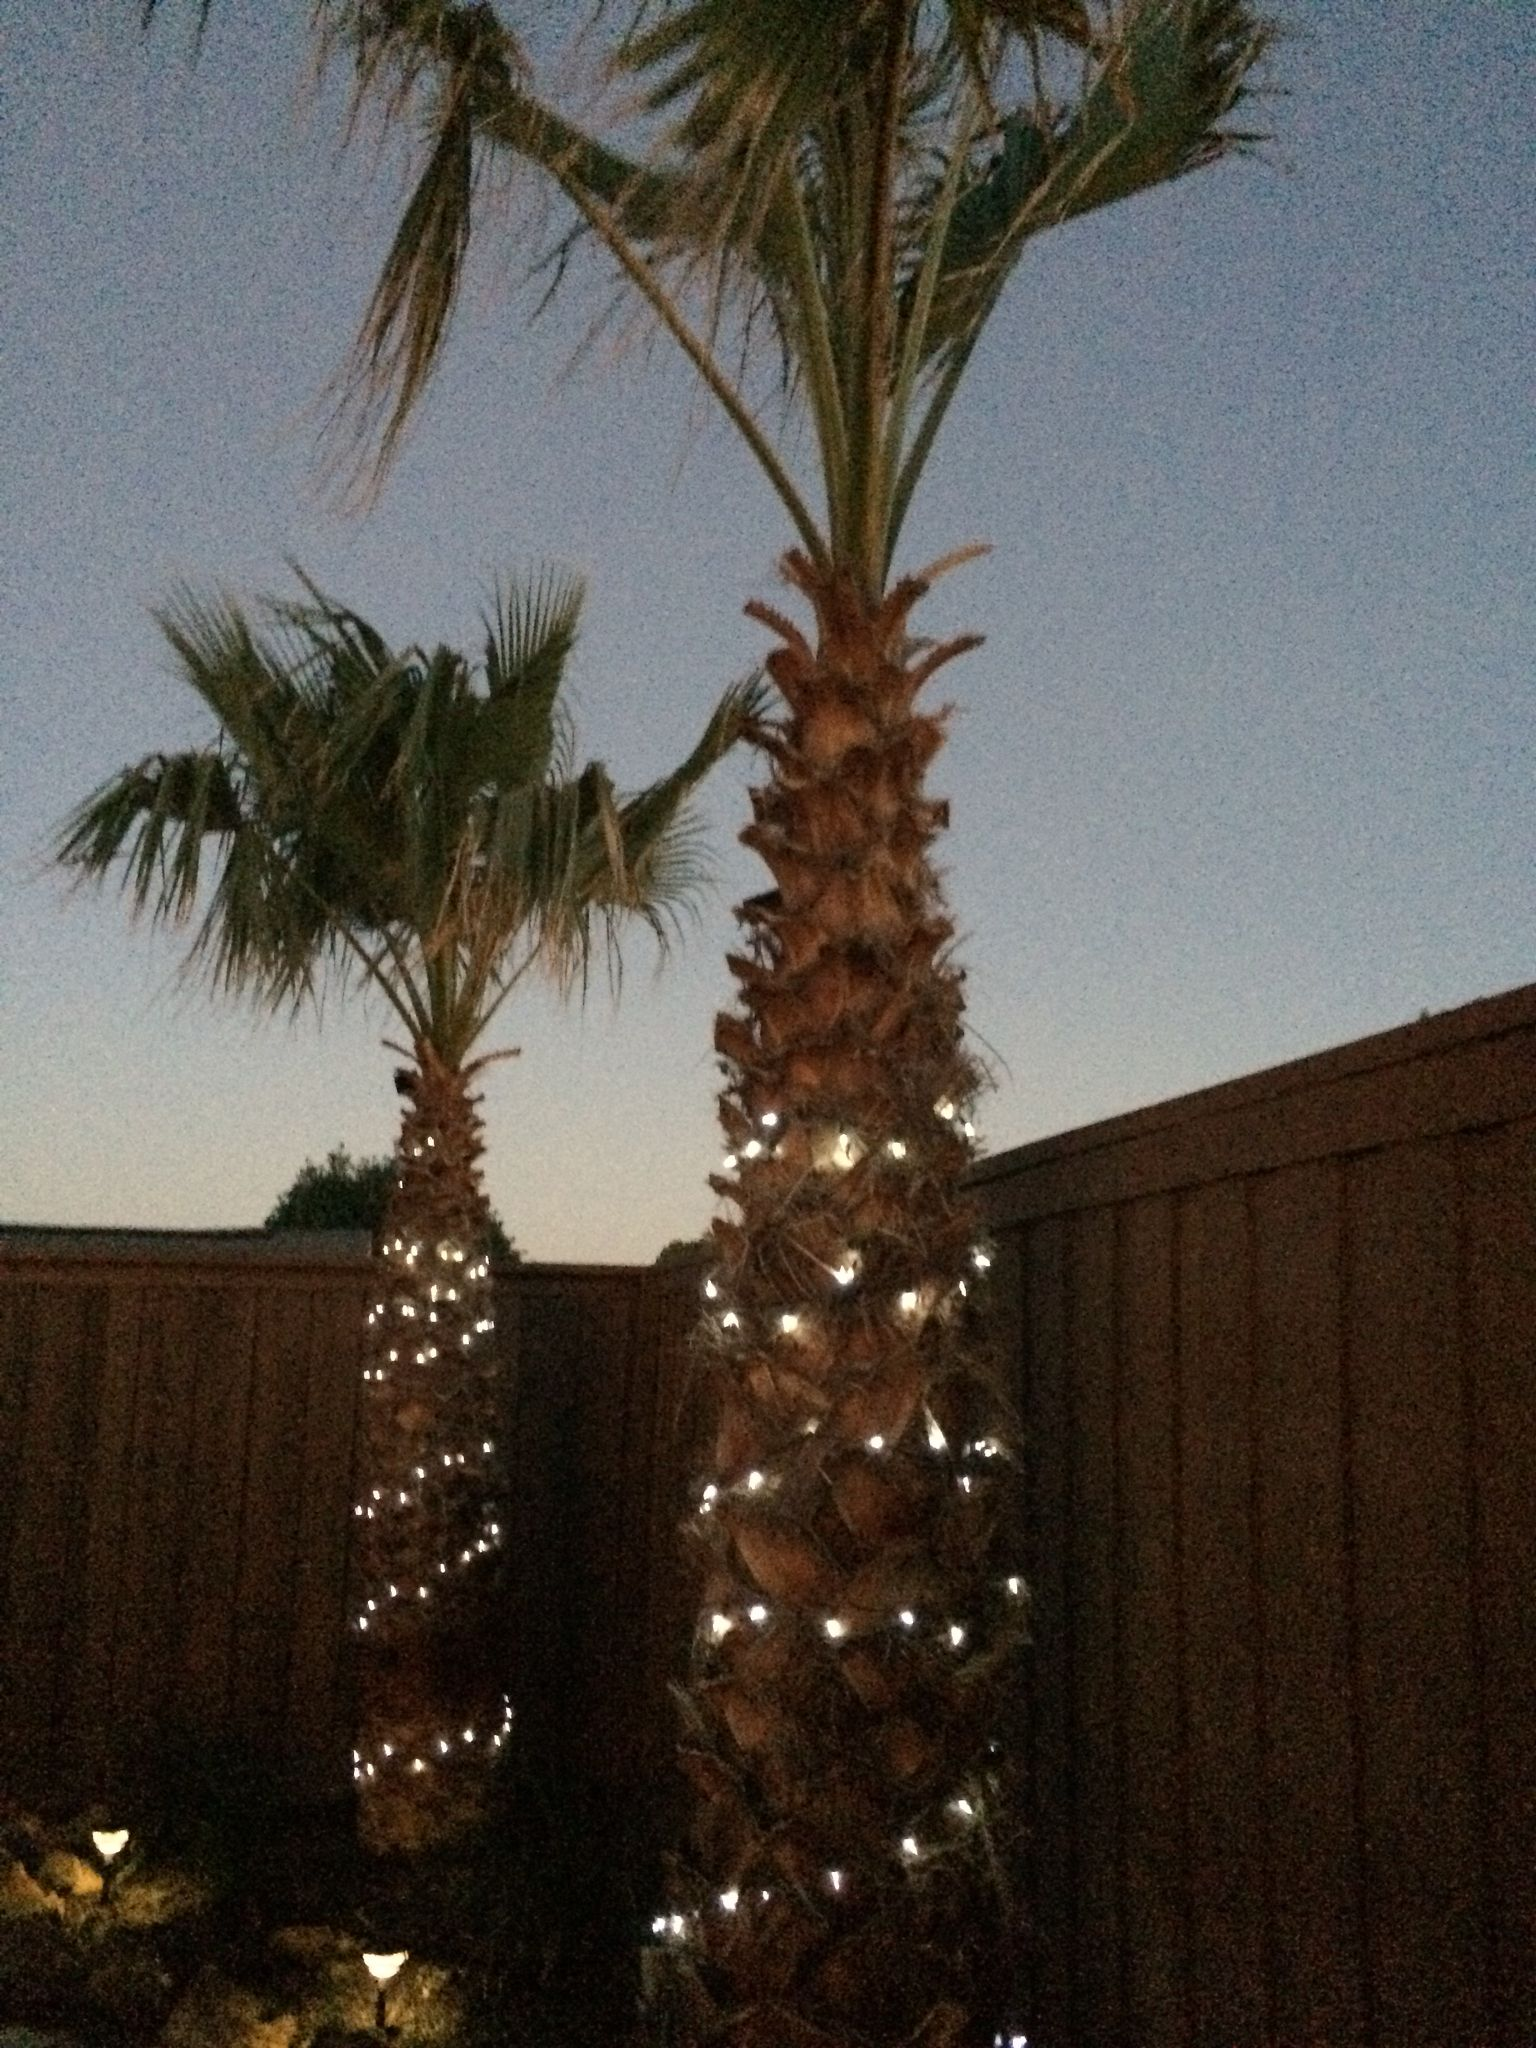 You can see when 200 strands are put on these trees they will look so much better.